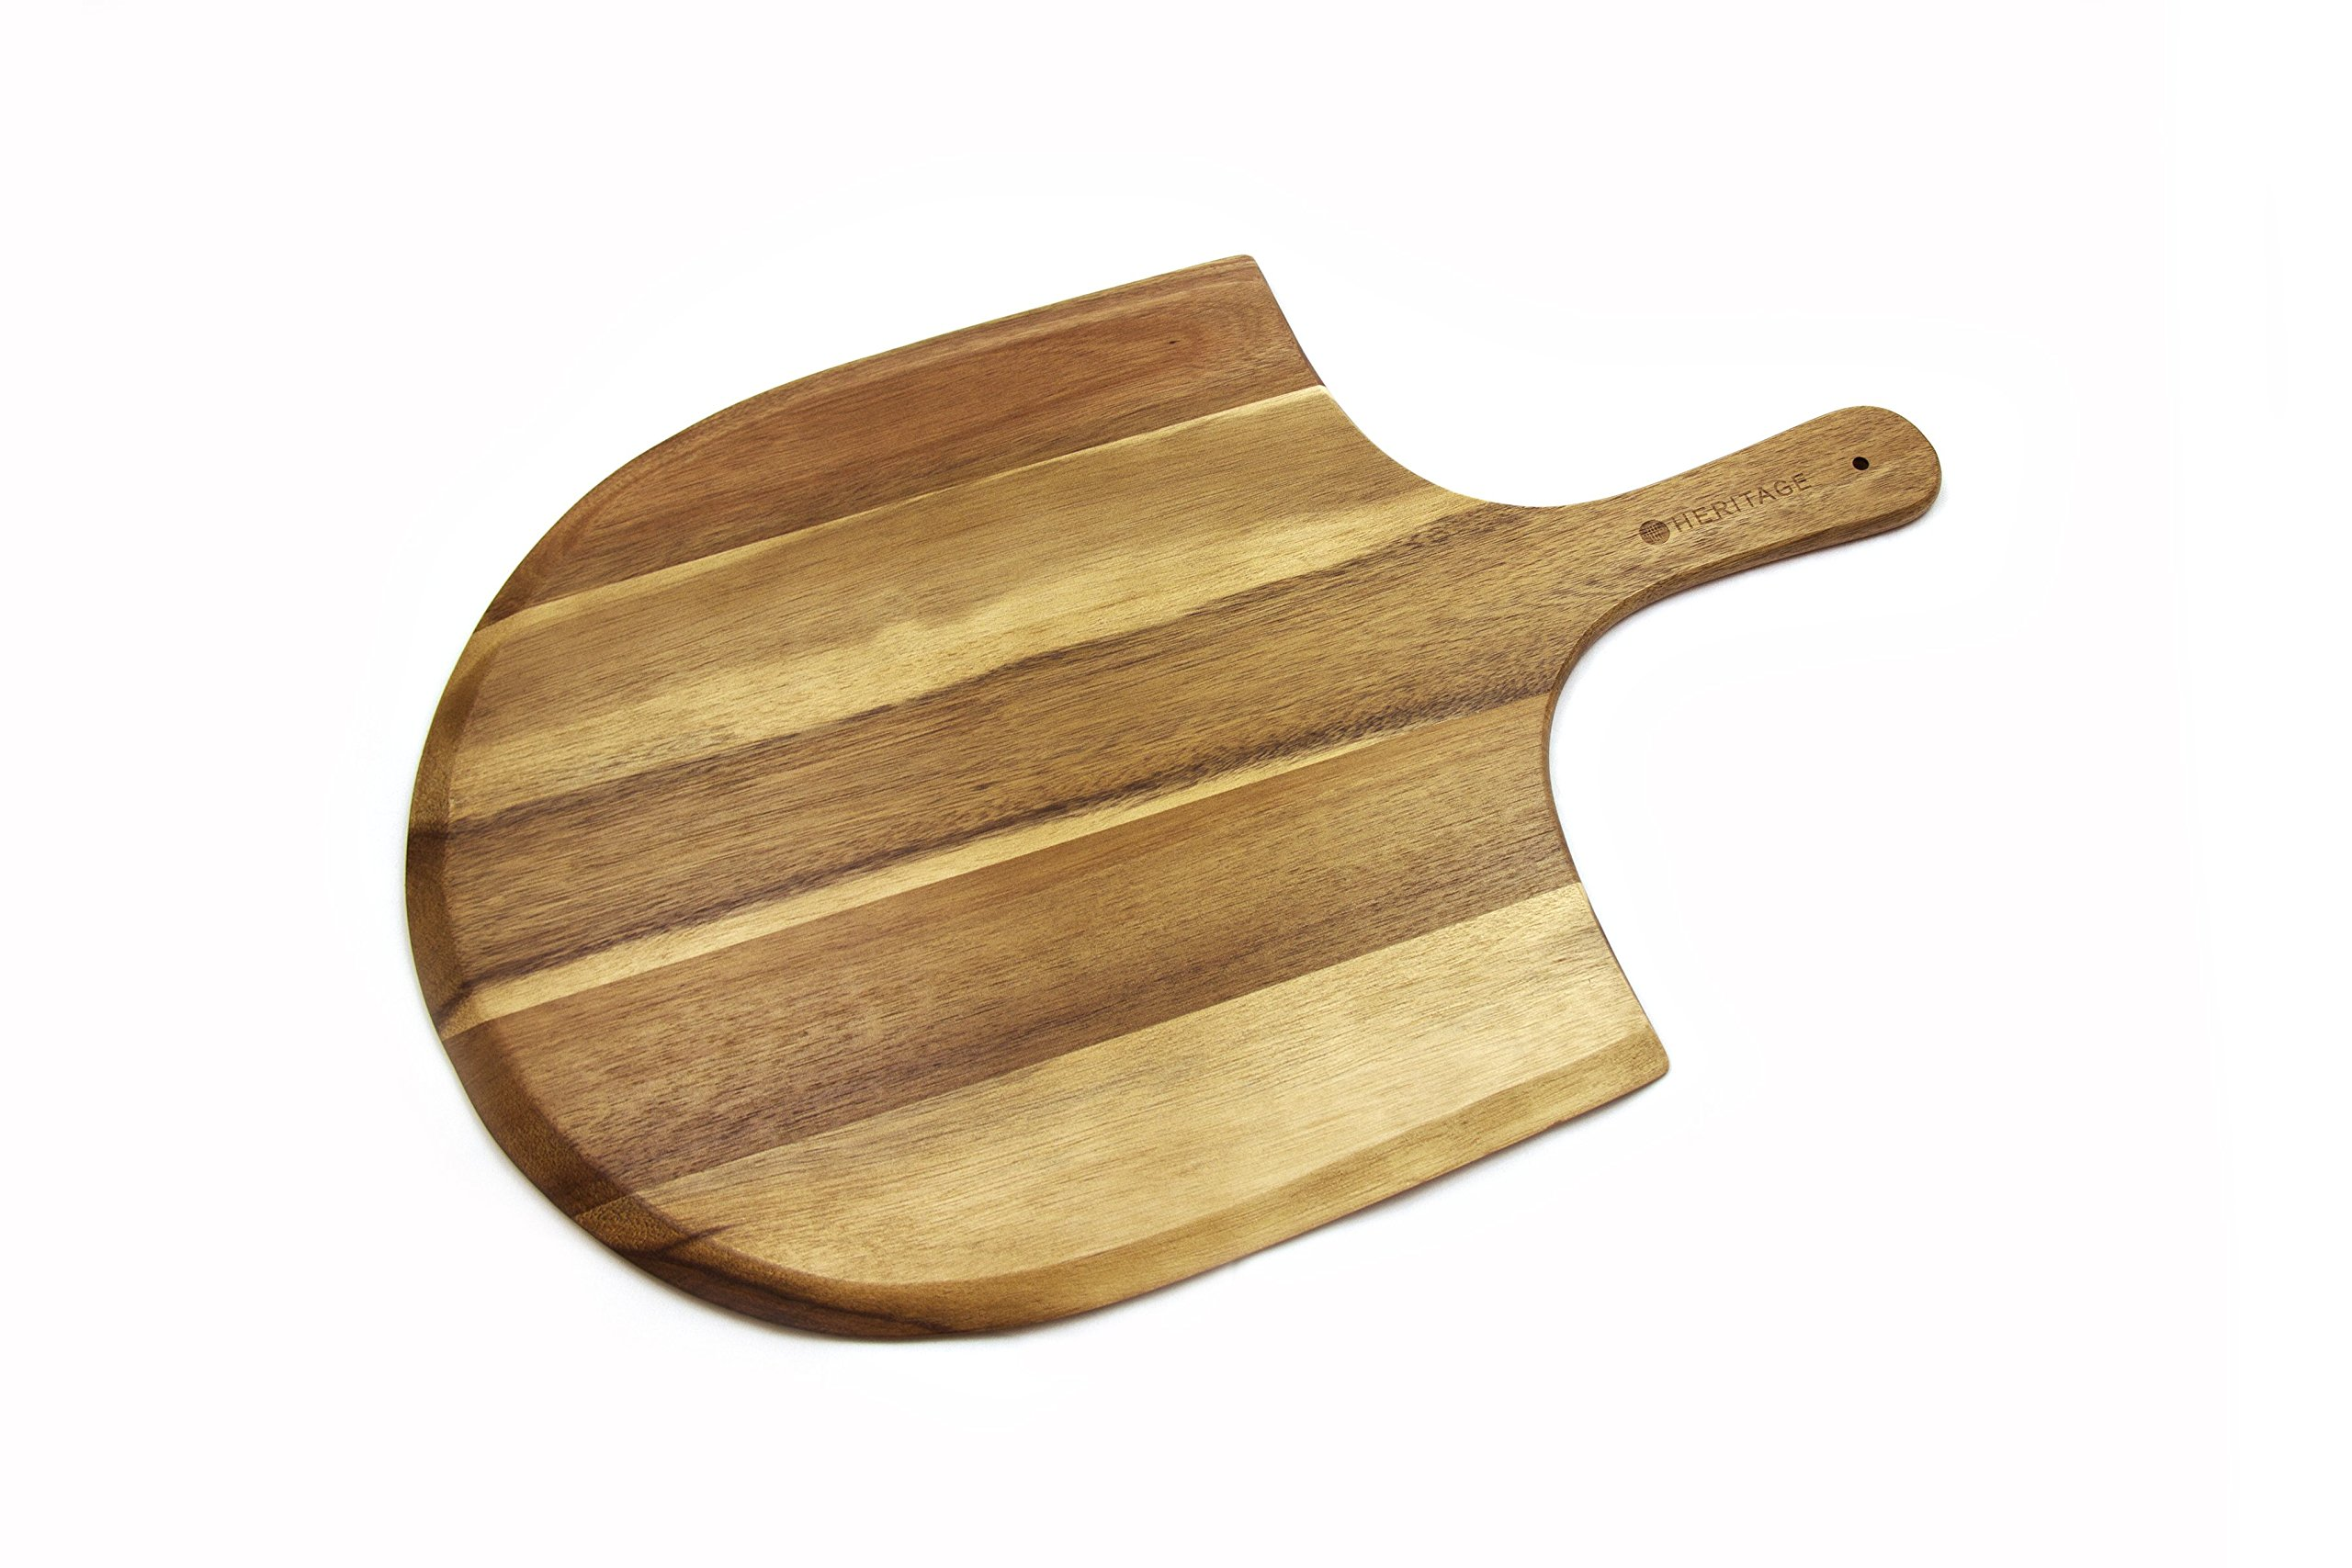 Heritage Acacia Wood Pizza Peel, Great for Homemade Pizza, Cheese and Charcuterie Boards - 22'' x 14''